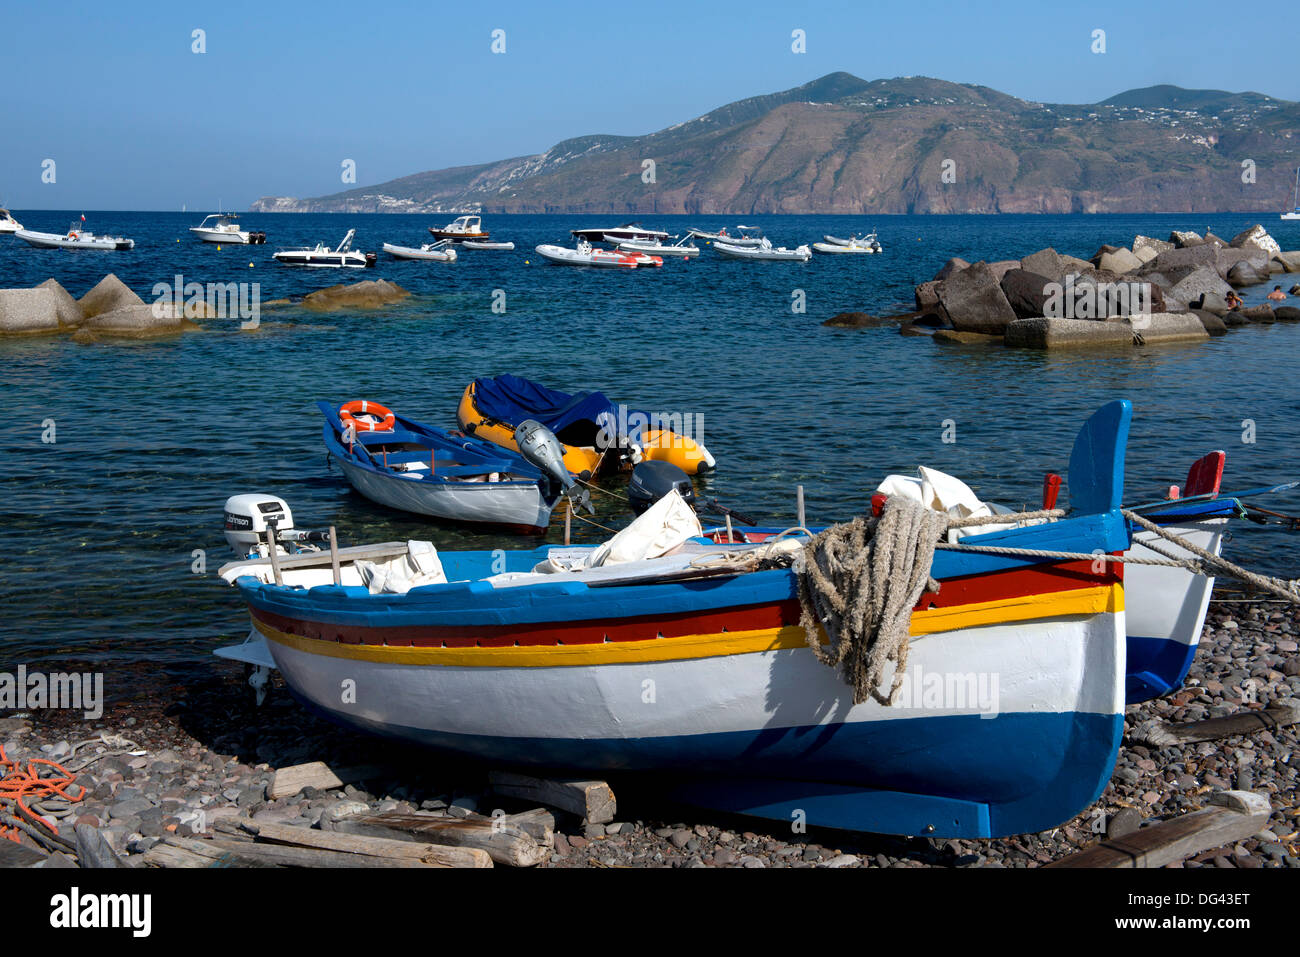 Colourful wooden fishing boats in Lingua, Salina, The Aeolian Islands, UNESCO Site, off Sicily, Messina Province, Italy - Stock Image